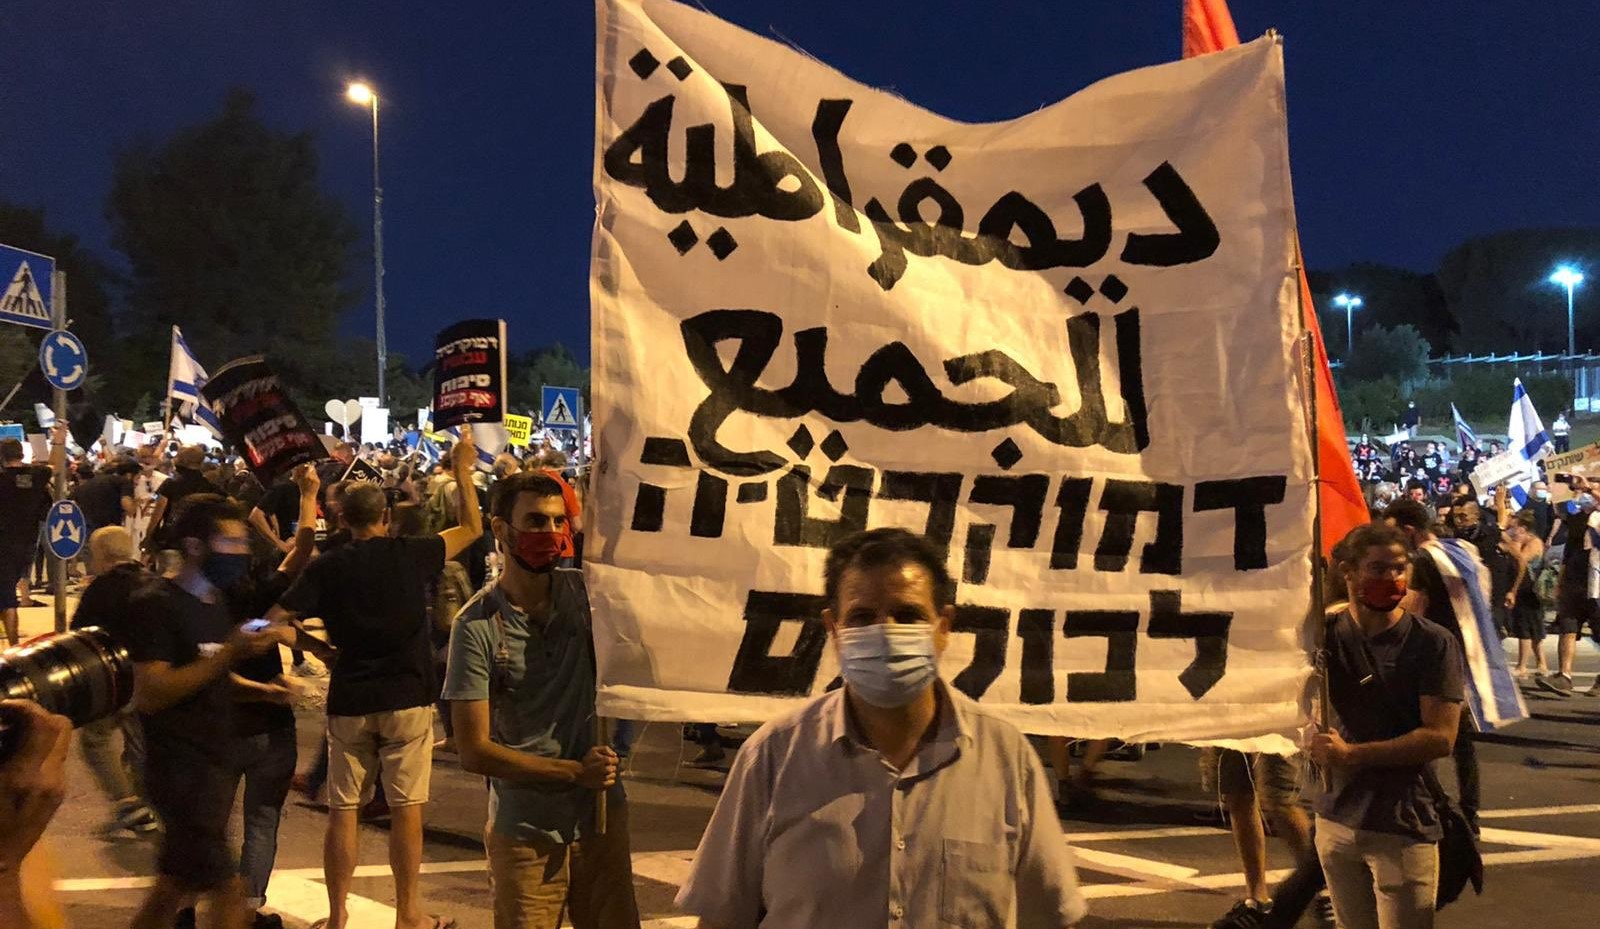 """Joint List leader, MK Ayem demonstration against Prime Minister Netanyahu on Tuesday, July 21, 2020. The banner in Arabic and Hebrew reads """"Democracy for all."""""""